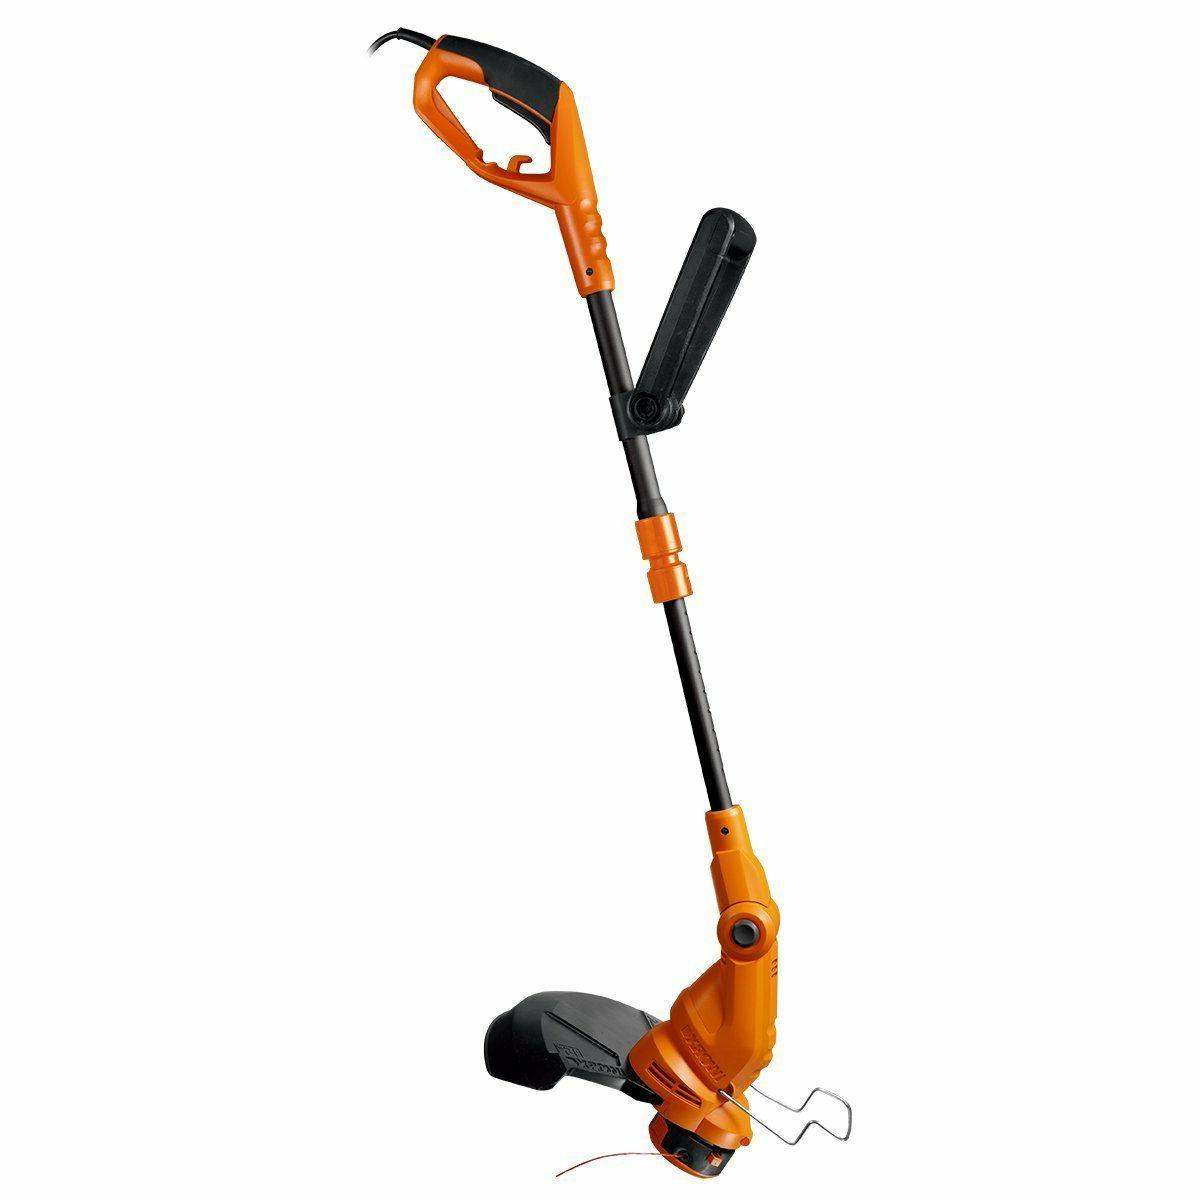 wg119 electric grass trimmer